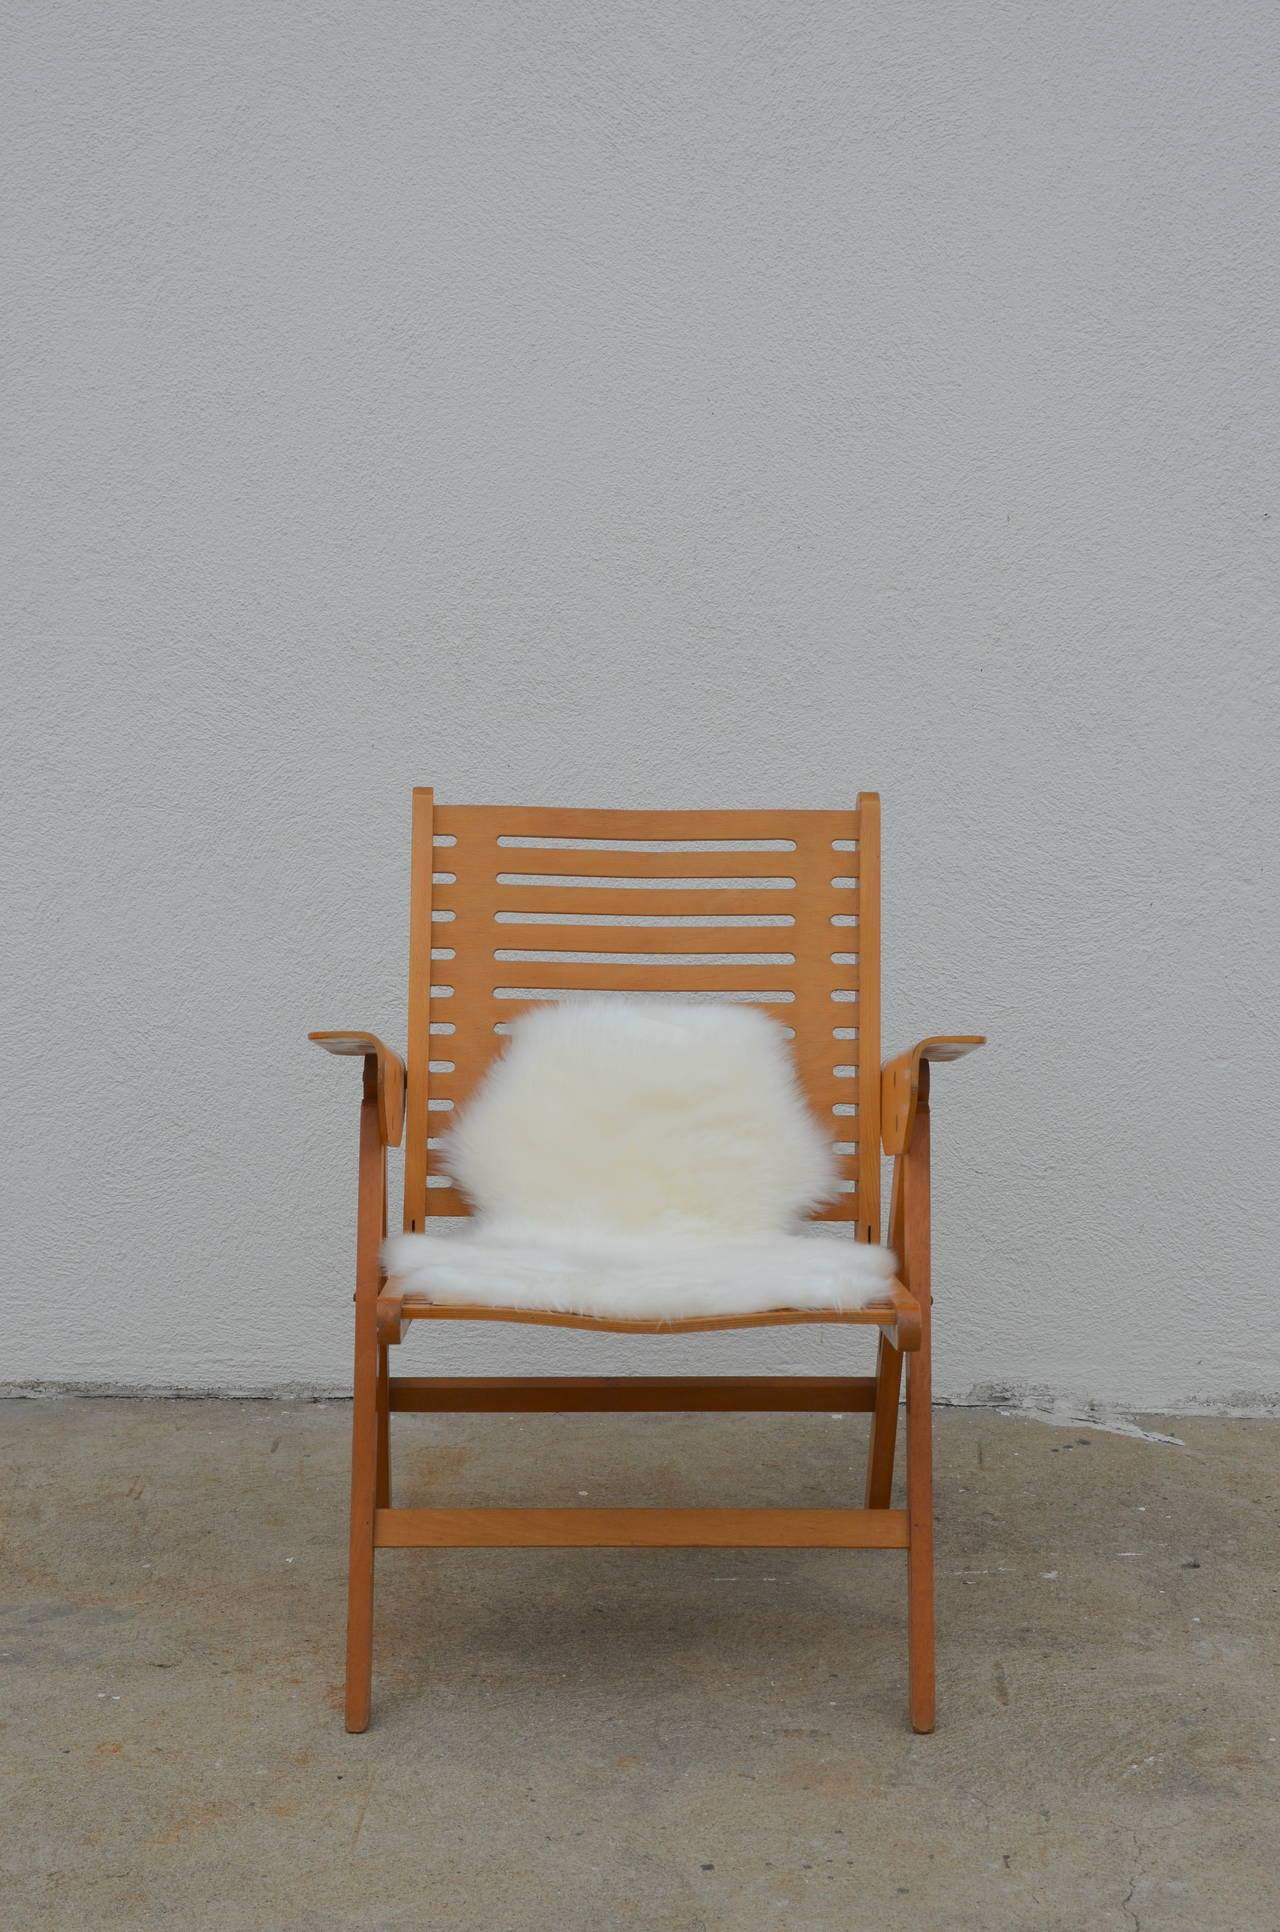 Iconic Vintage Folding Rex Lounge Chair by Niko Kralj For Sale at